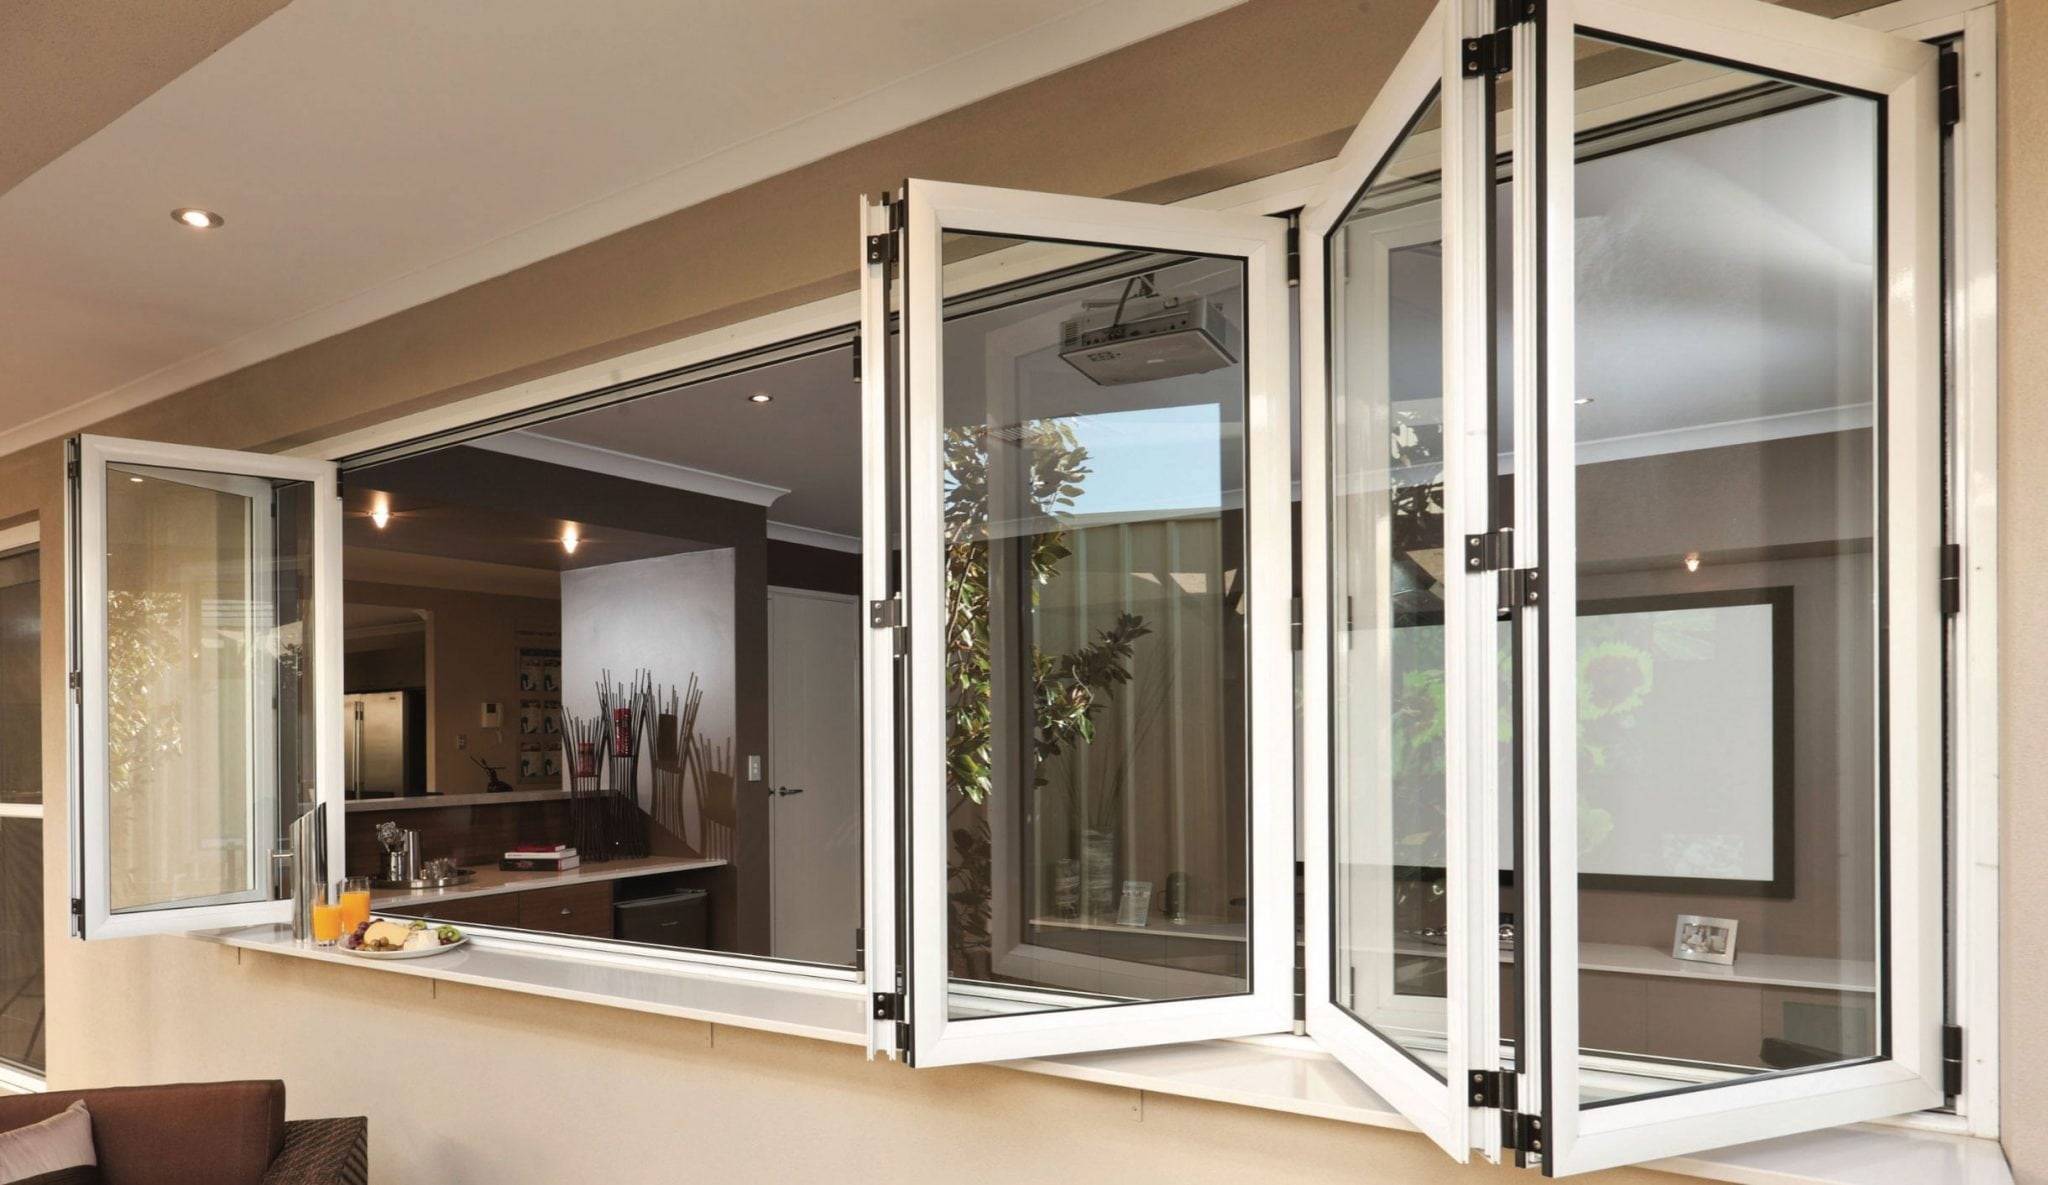 You should not go beyond the addition of any high-quality matching windows if you already have aluminium double glazed windows built in your home and are searching for some new window options to complement.